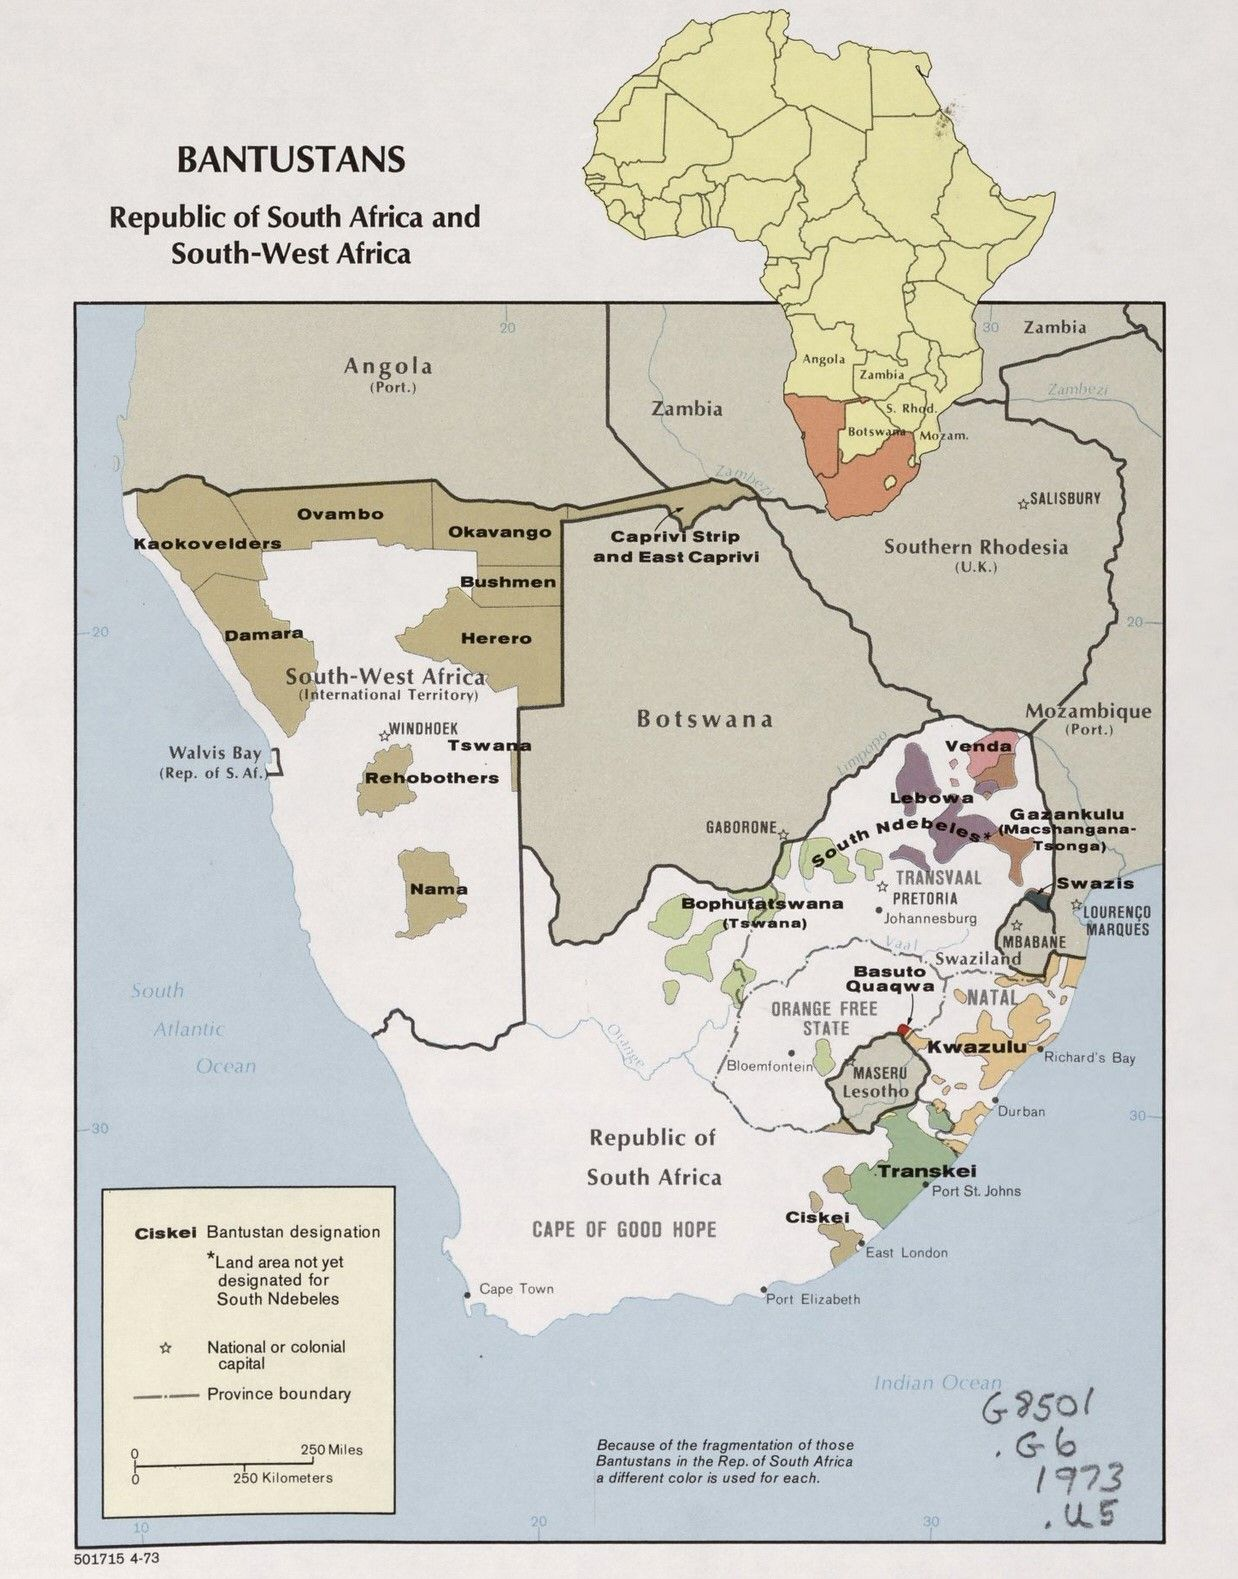 Bantustans republic of south africa and south west africa 1973 bantustans republic of south africa and south west africa 1973 ccuart Images